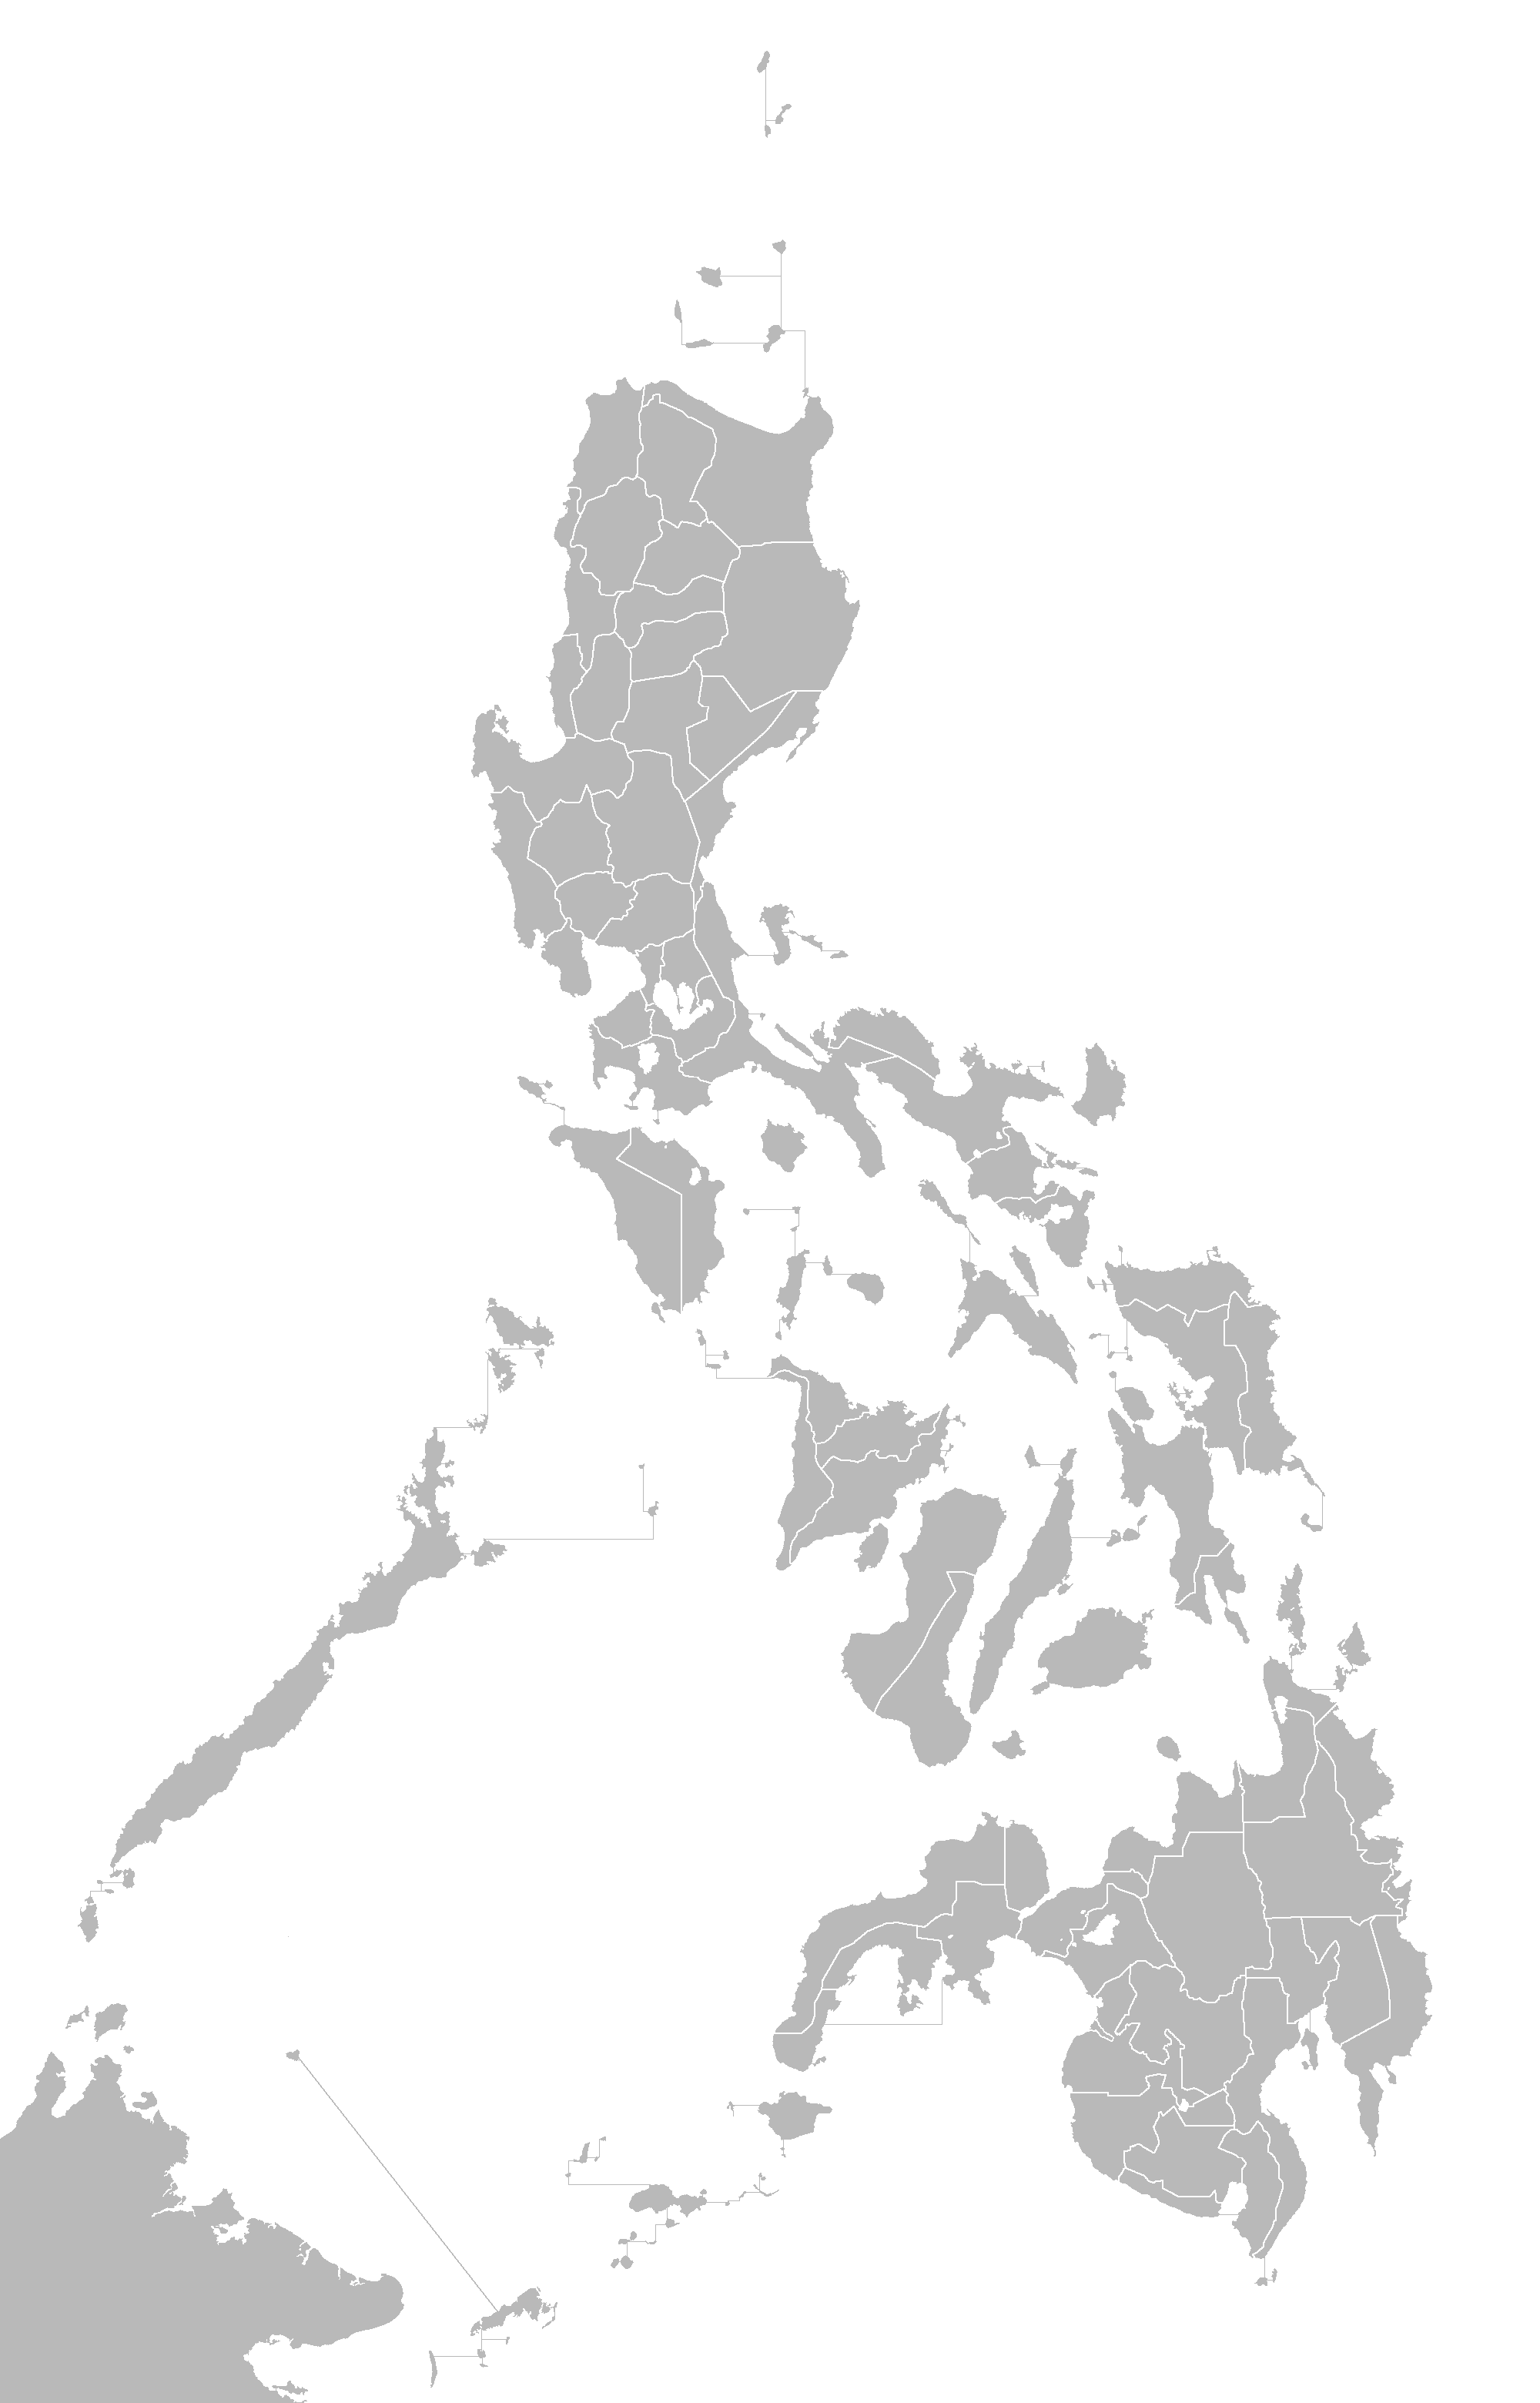 Outline of the Philippines